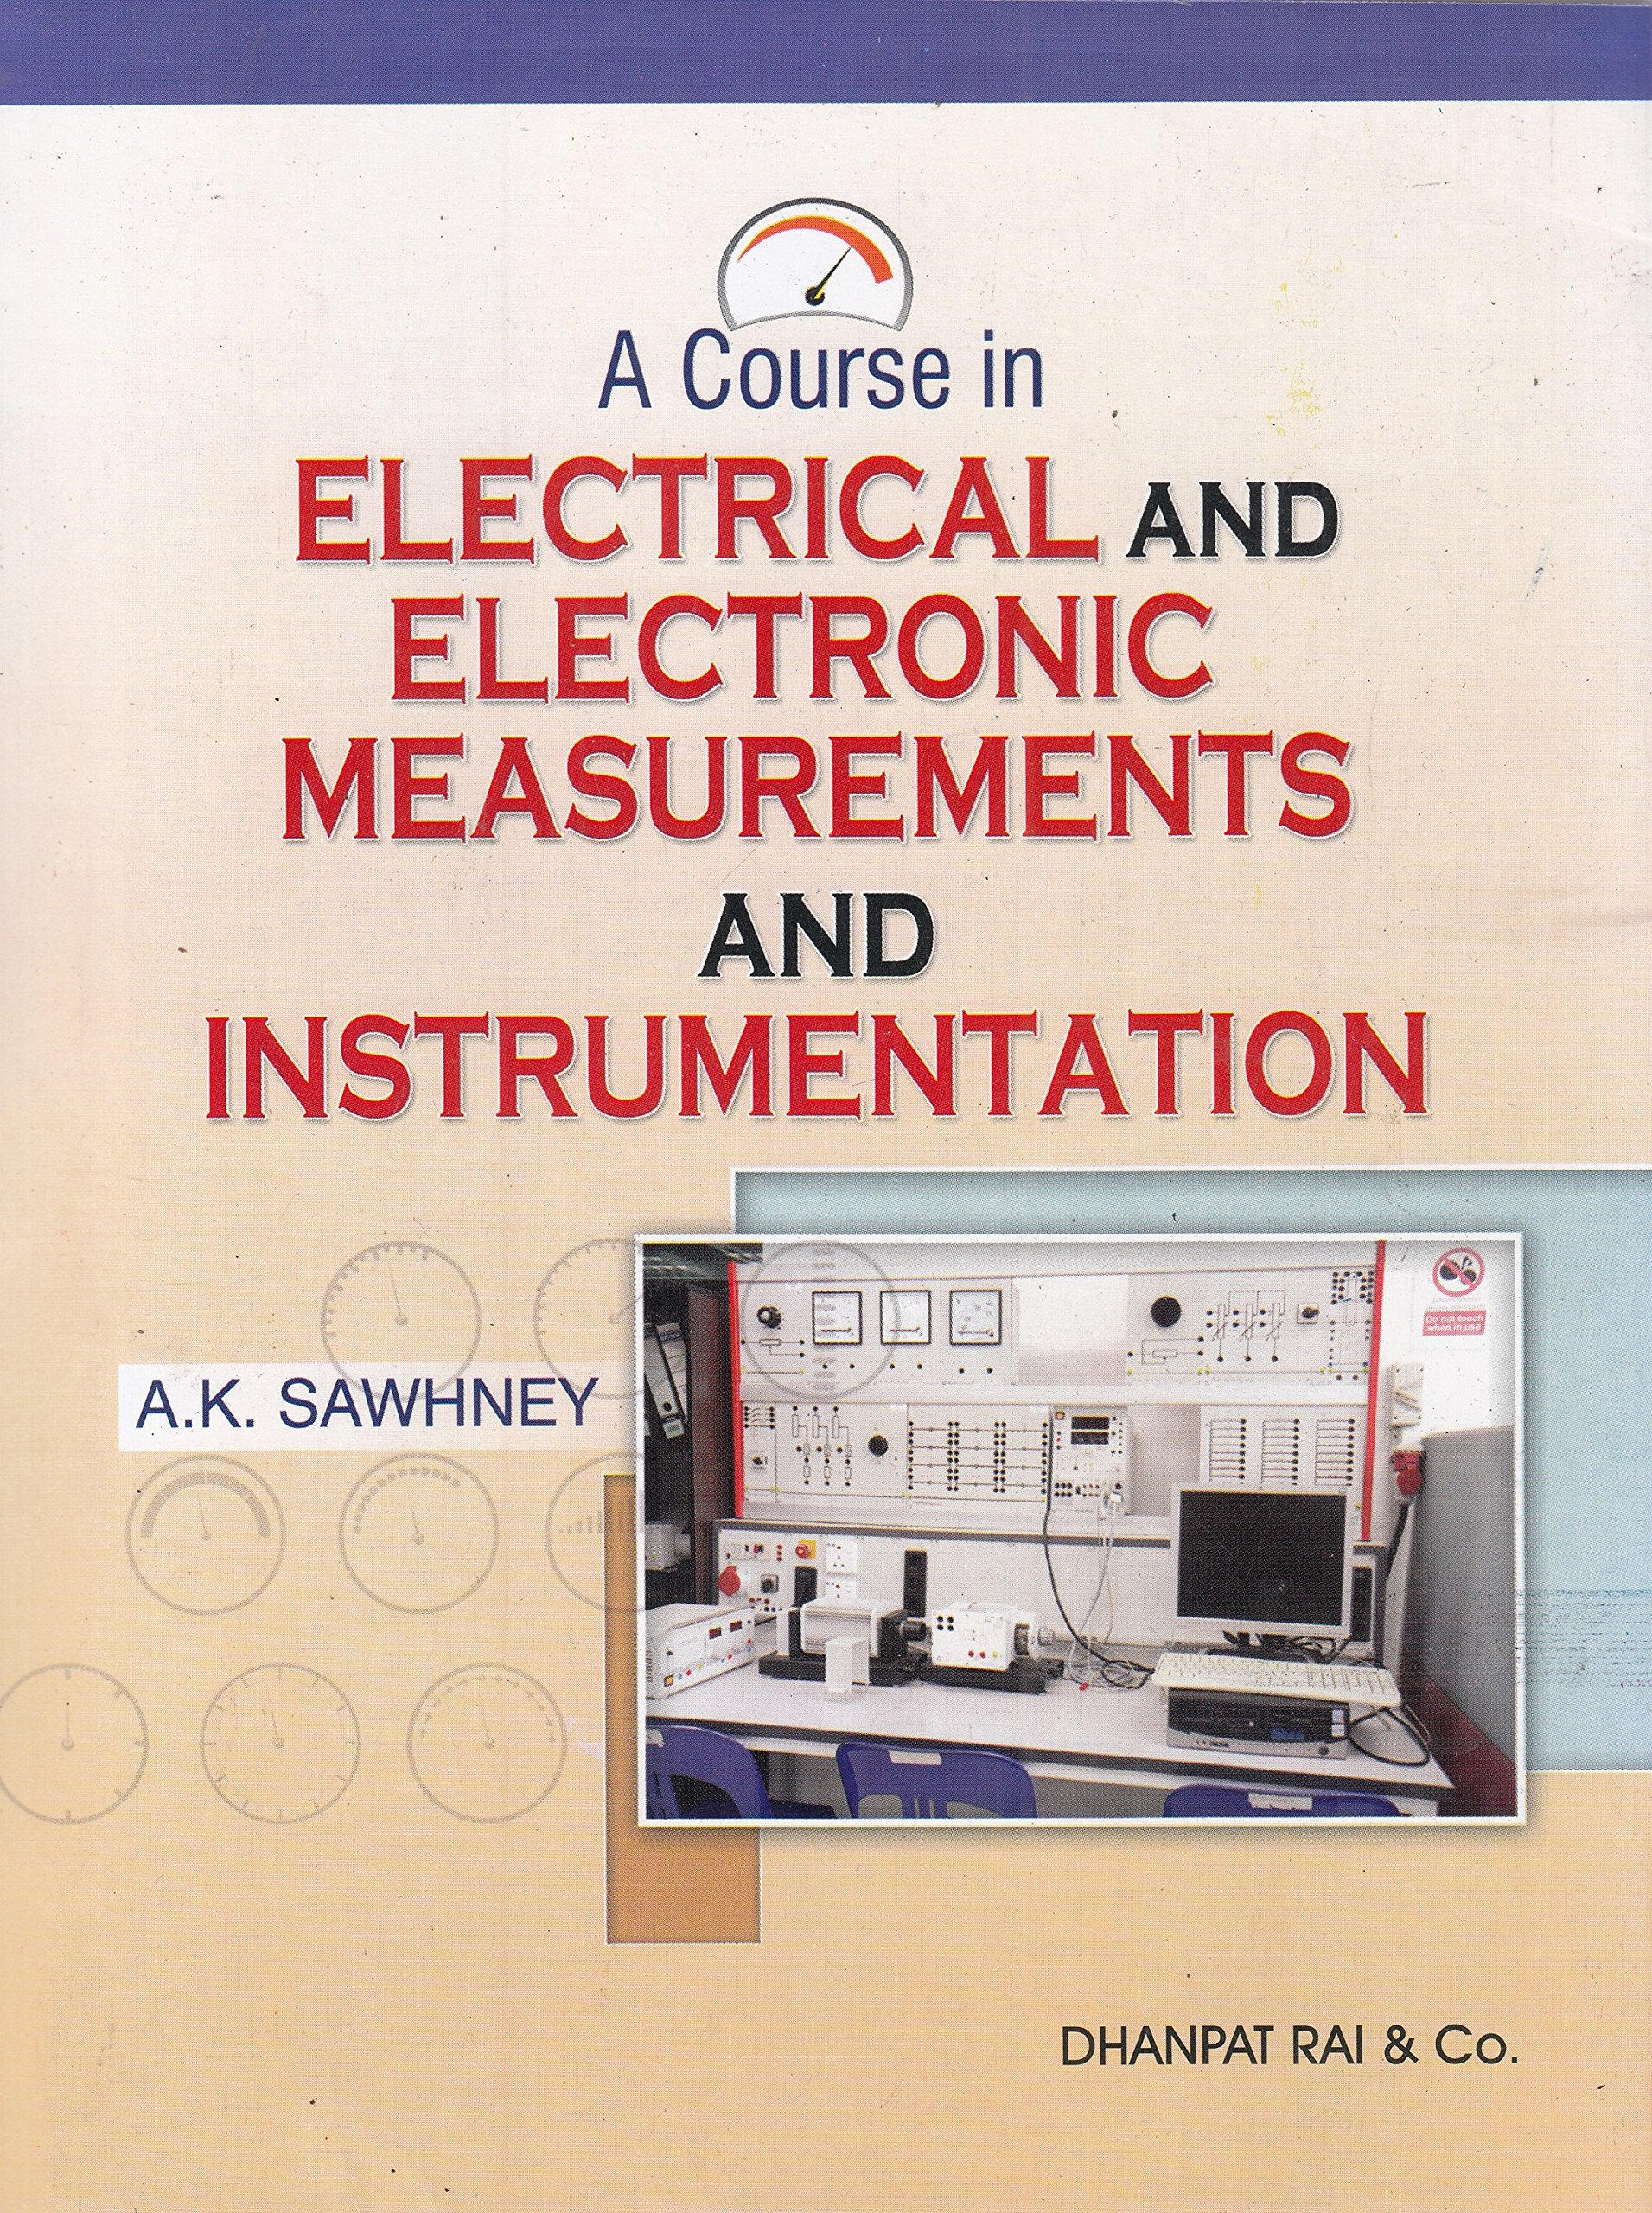 Pdf A Course In Electronic Measurements And Instrumentation By A K Sawhney Book Free Download Easyengineering